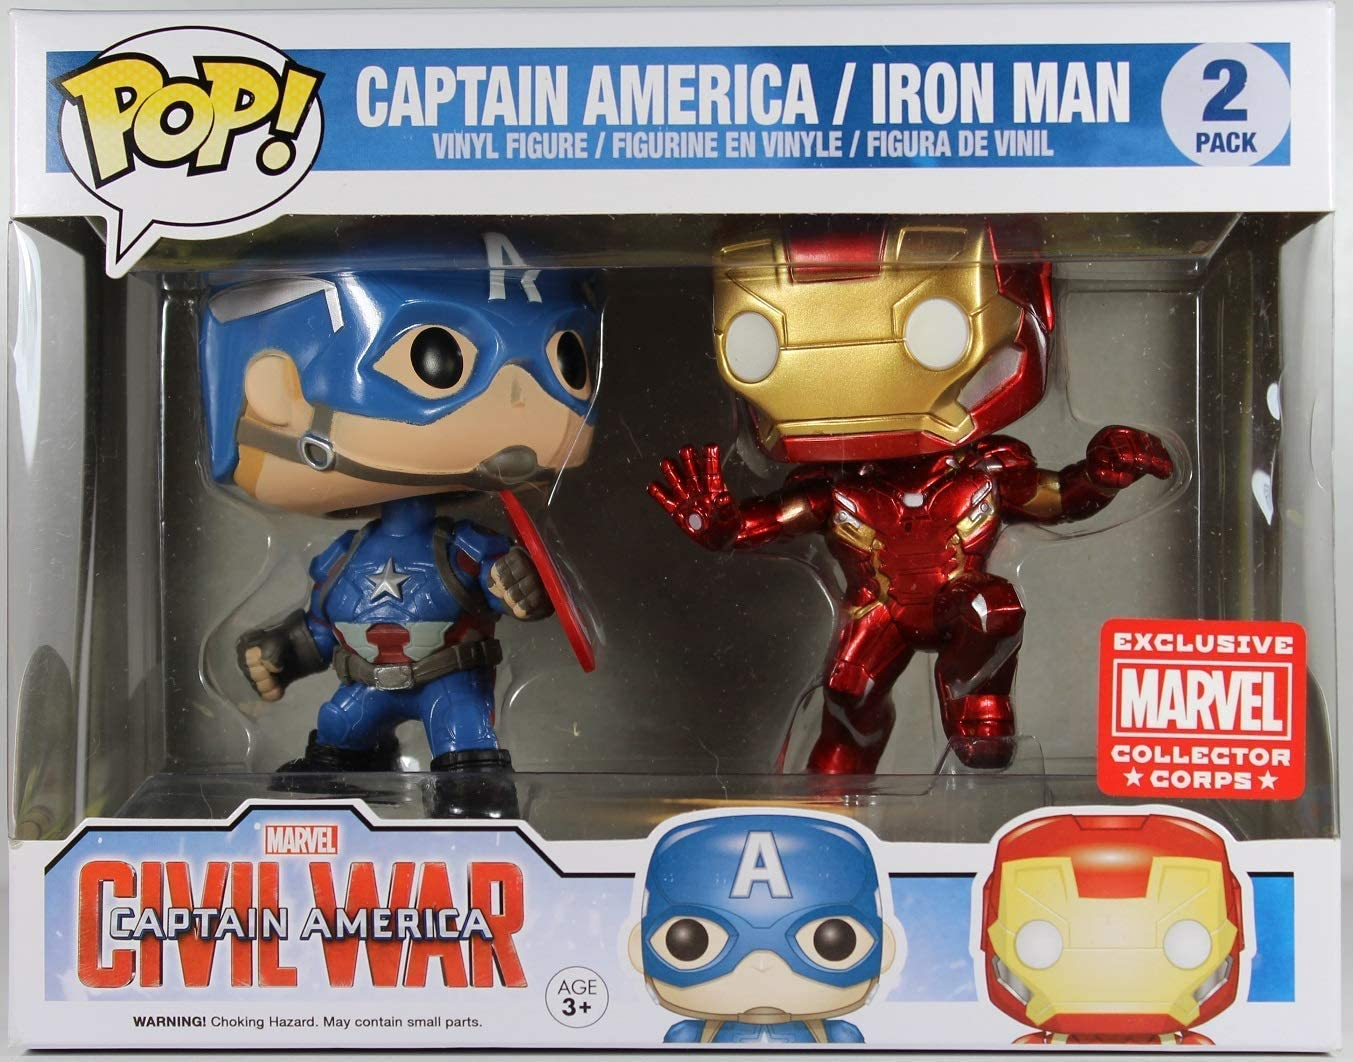 FunkoPop! Marvel: Civil War - Captain America vs. Iron Man Collectors Corps 2 Pack Vinyl Figure …: Amazon.es: Juguetes y juegos